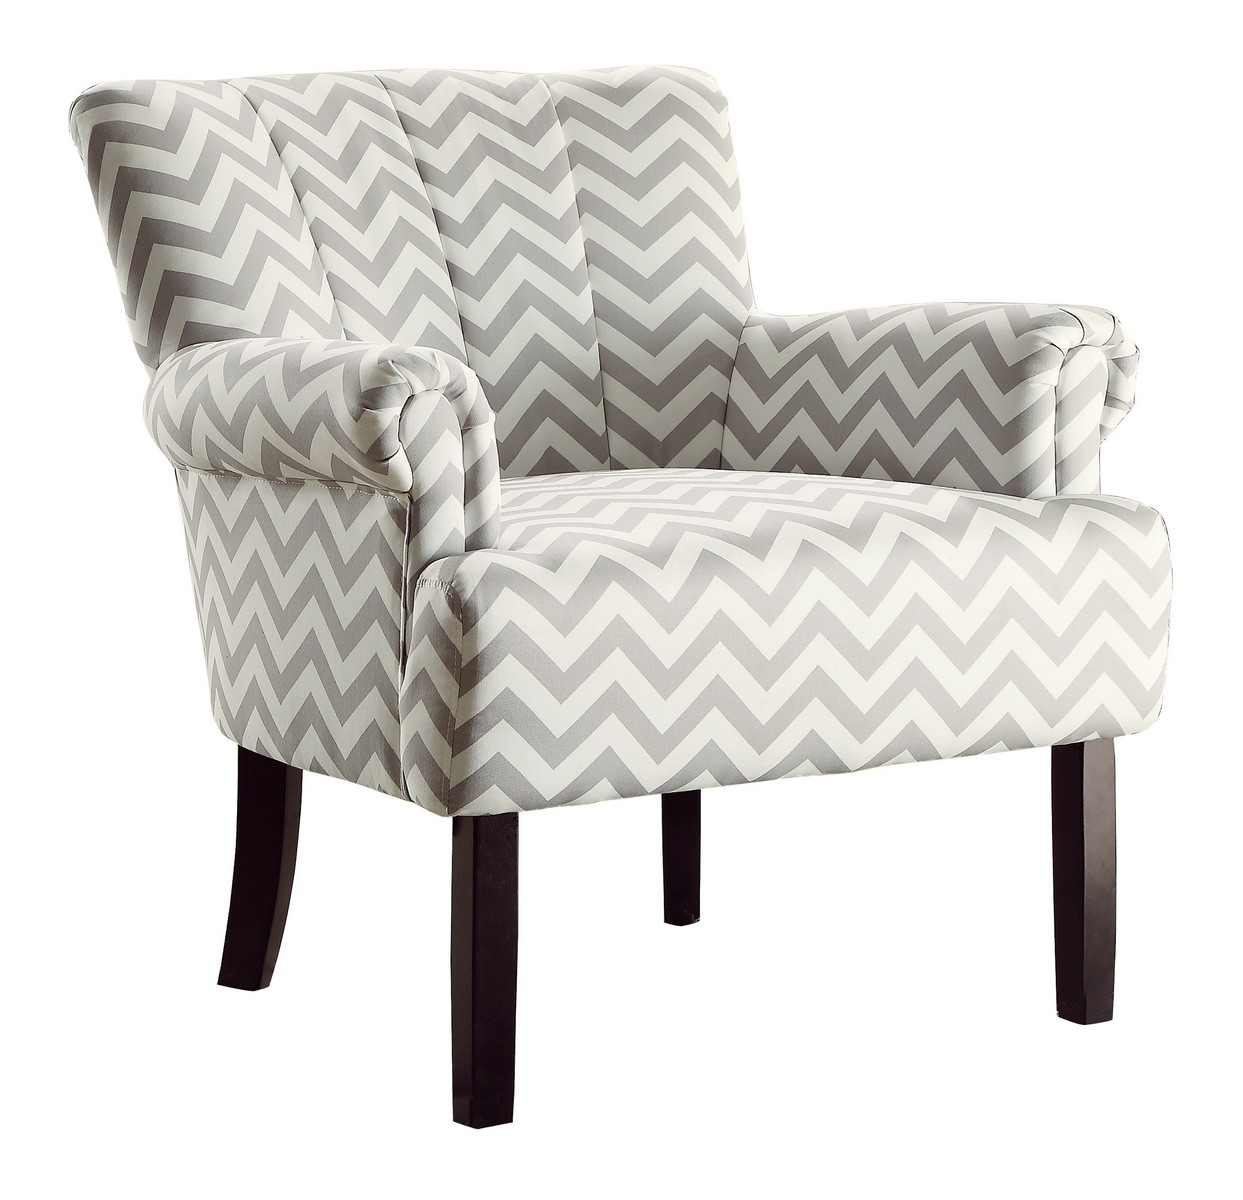 Homelegance Langdale Accent Chair - Grey Chevron